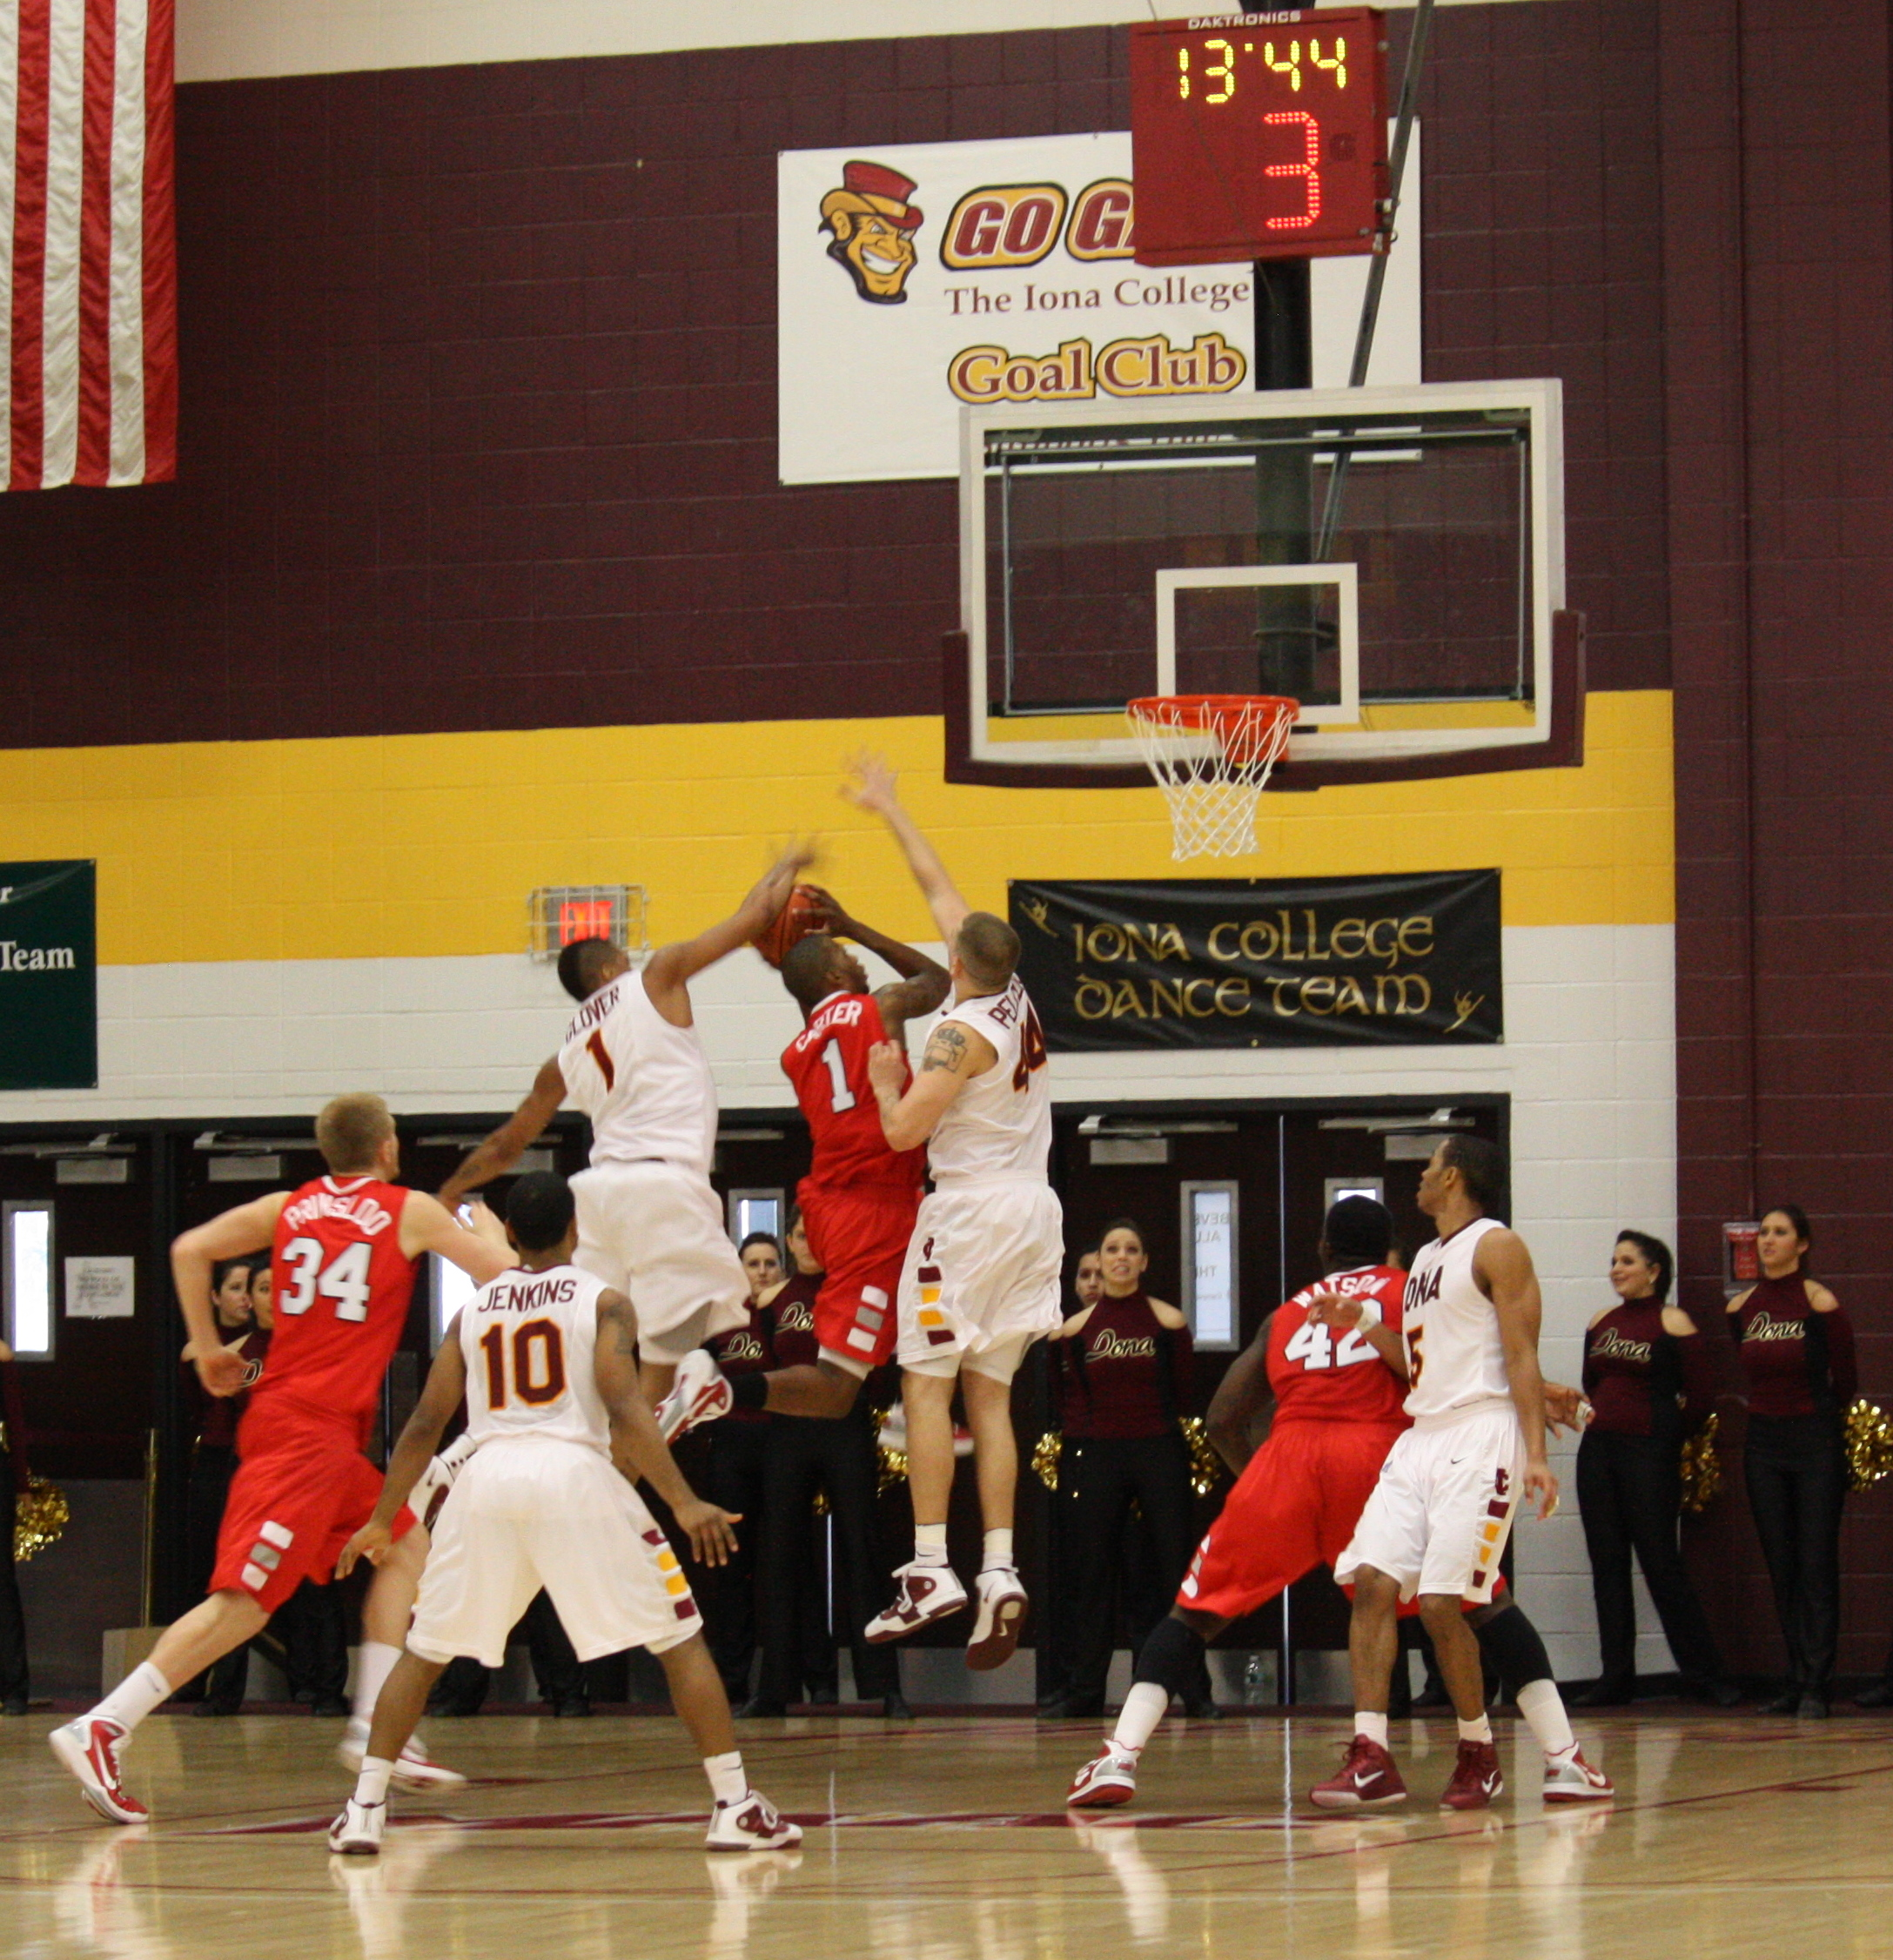 #1 Glover and #44 Pelcher Provide Iona Aggressive Defense